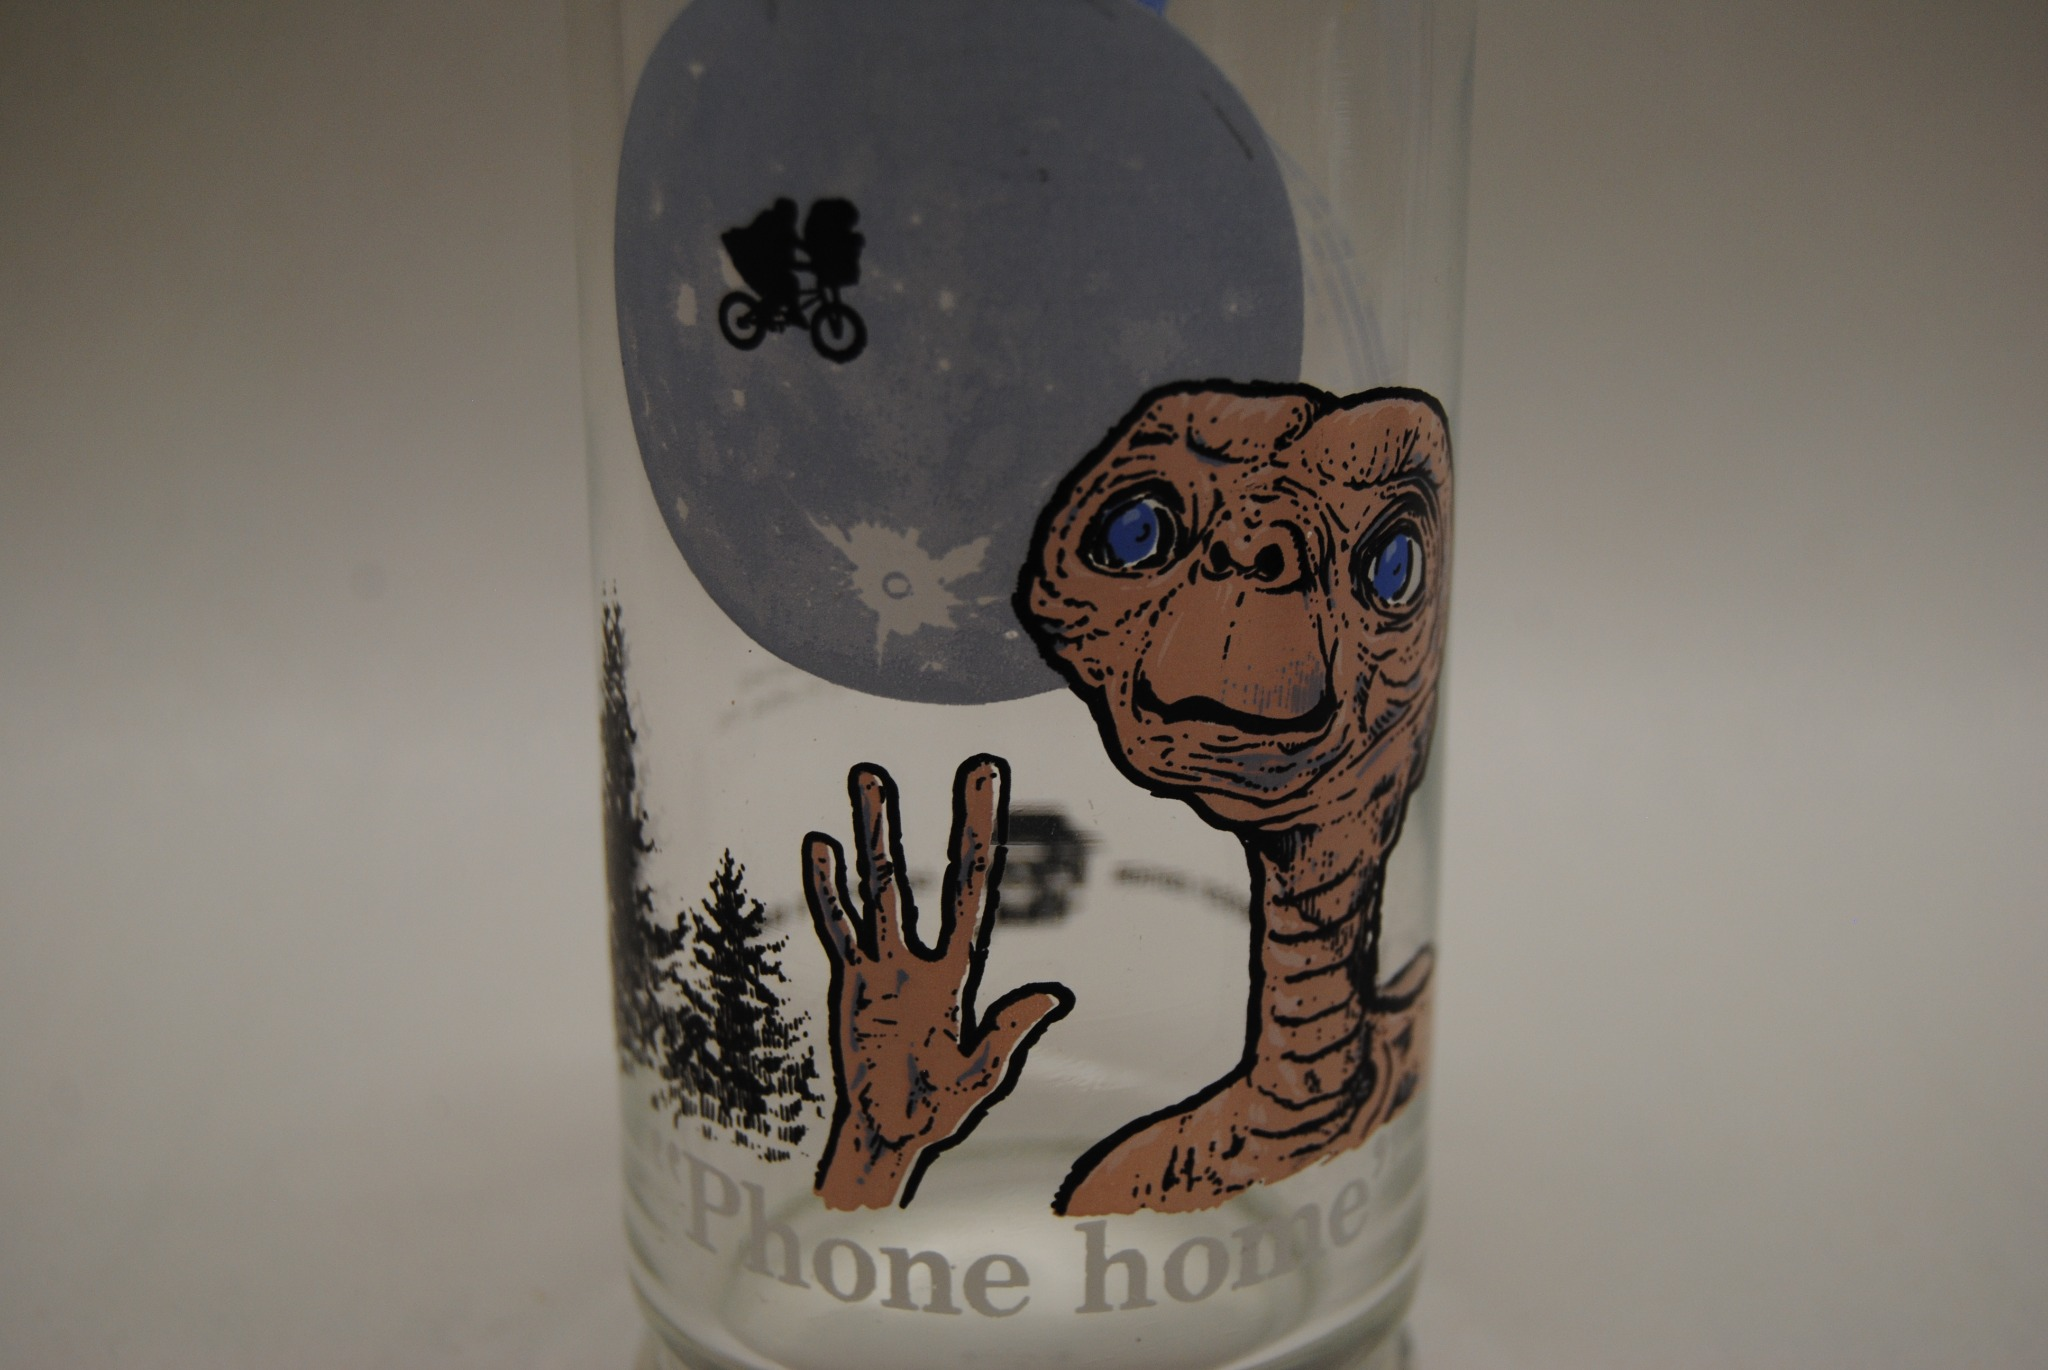 1982 ET Phone Home Collector's Glass (E)